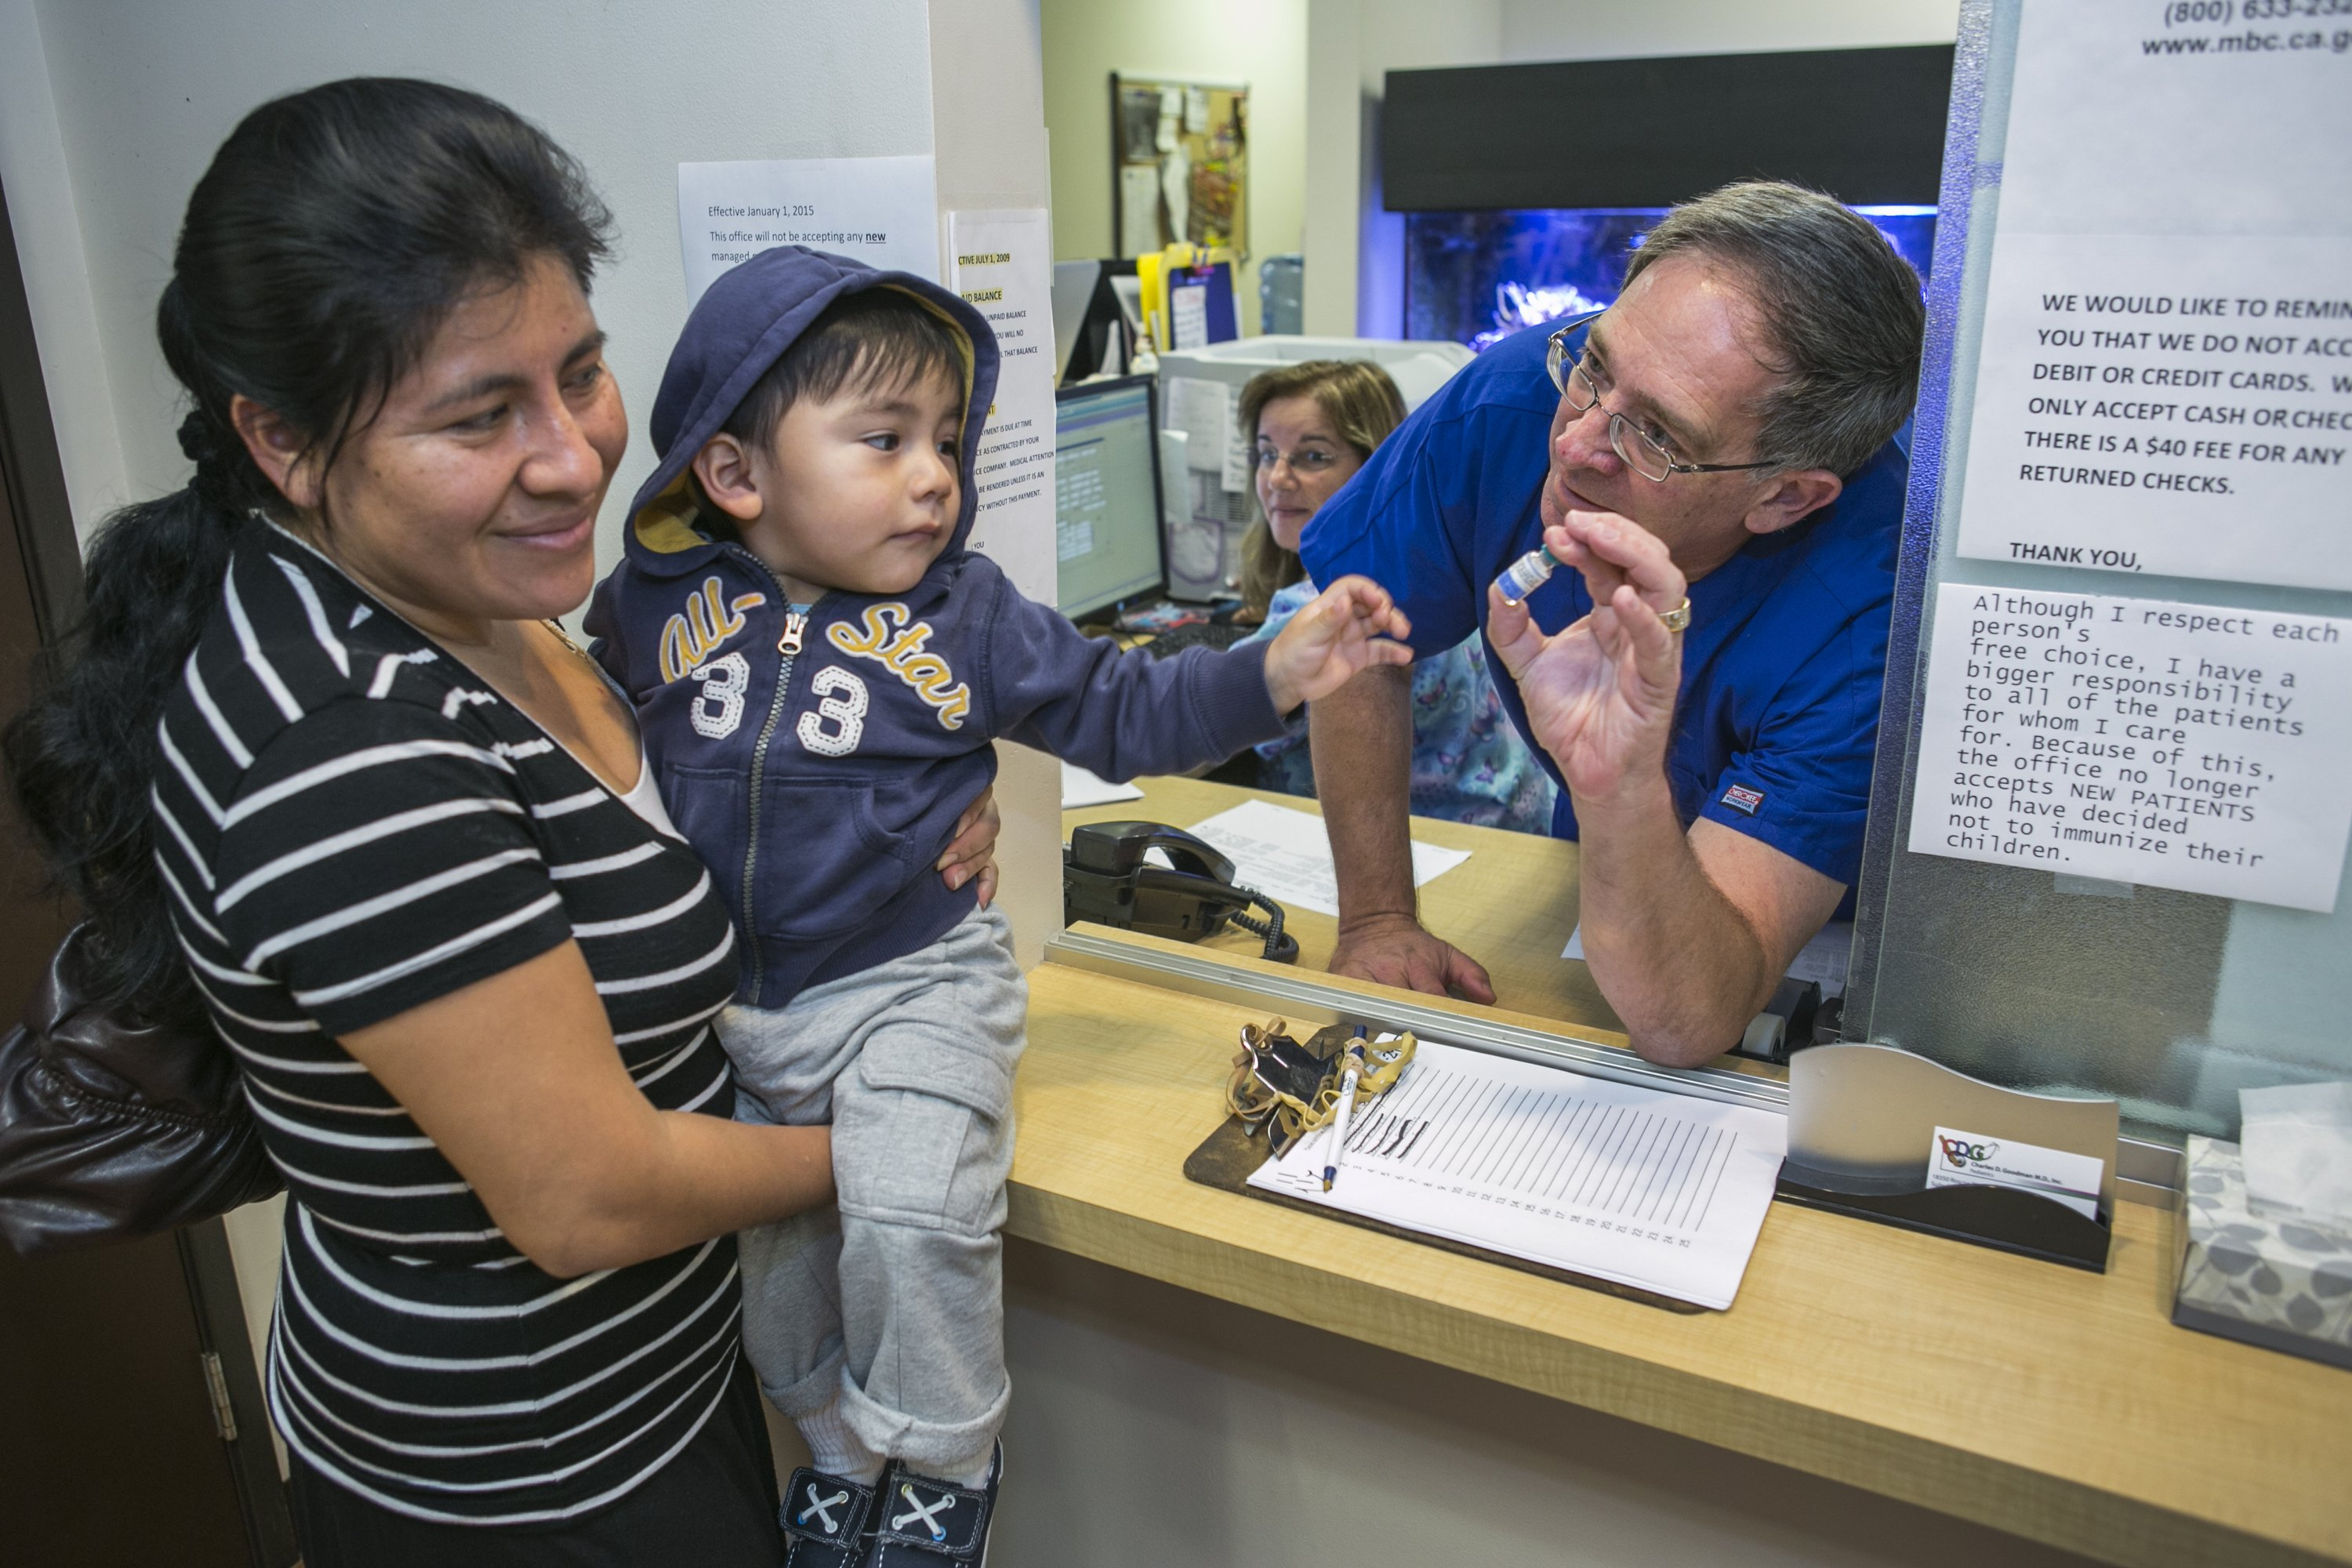 Pediatrician Dr. Charles Goodman talks with Carmen Lopez, who is holding her 18-month-old son Daniel after being vaccinated with the measles-mumps-rubella (MMR) vaccine, at his practice in Northridge, Calif., on Jan. 29, 2015